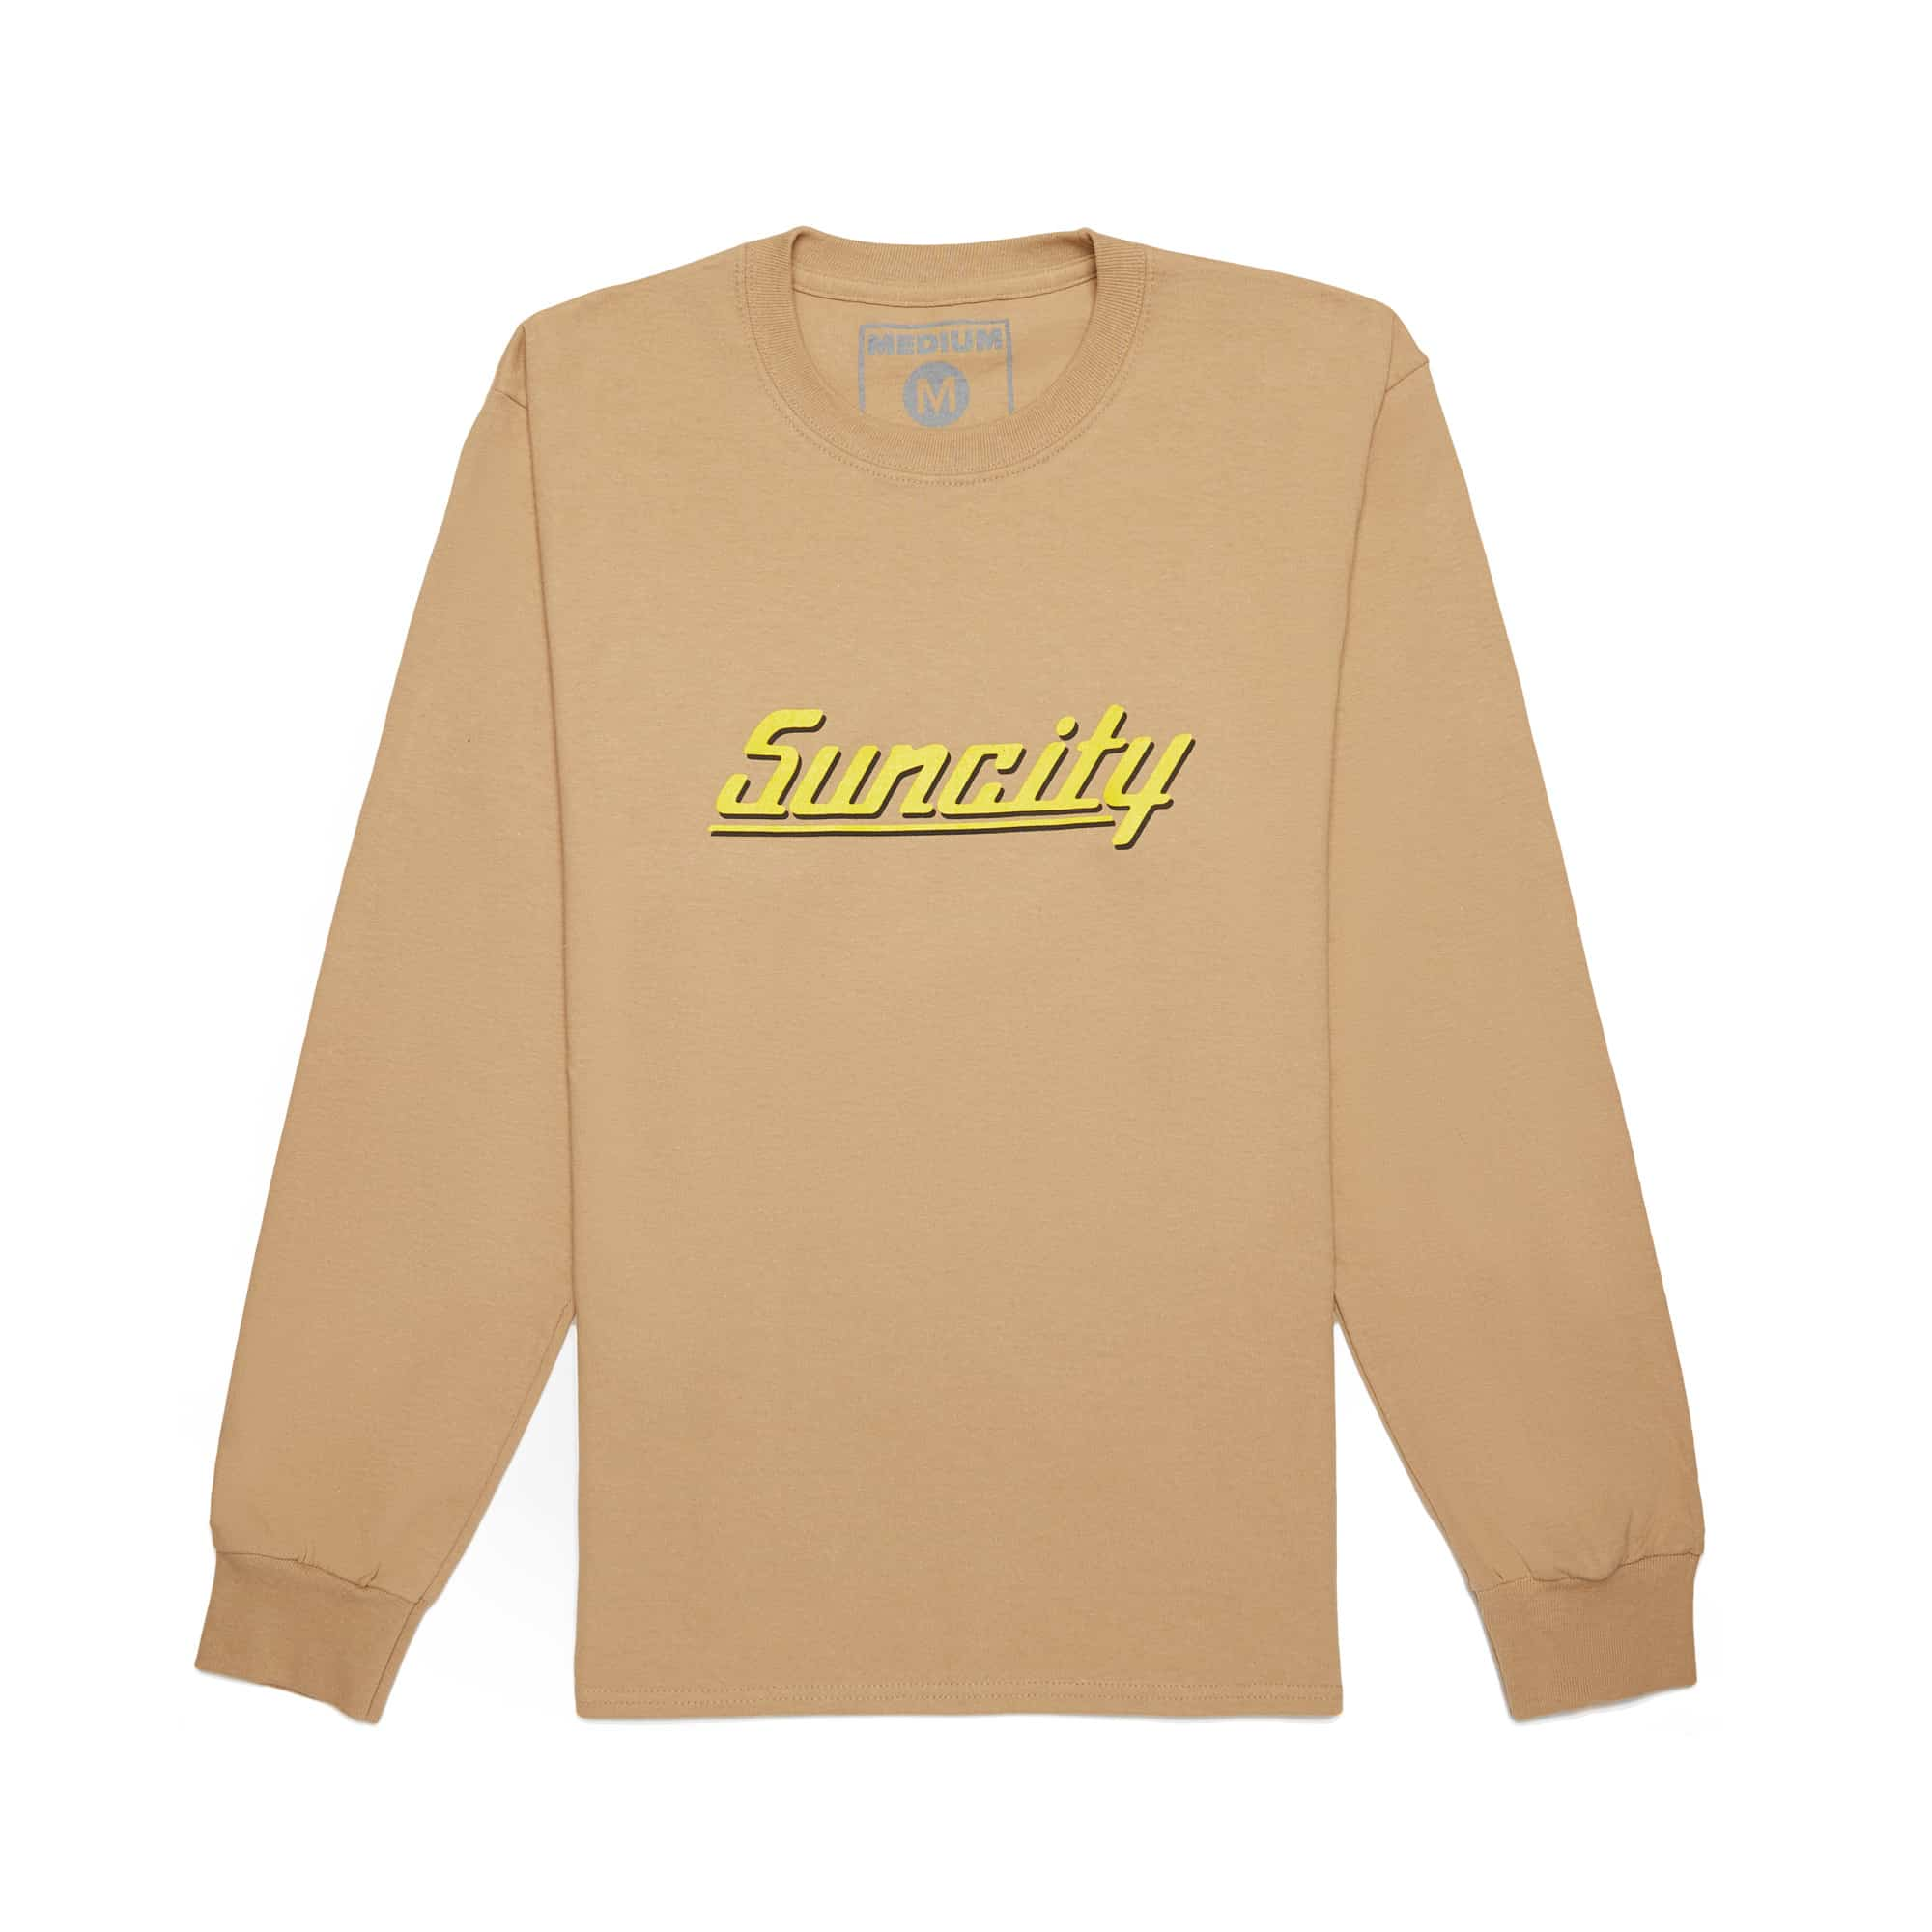 'Suncity' Long Sleeve Tee + Digital Download - Sand